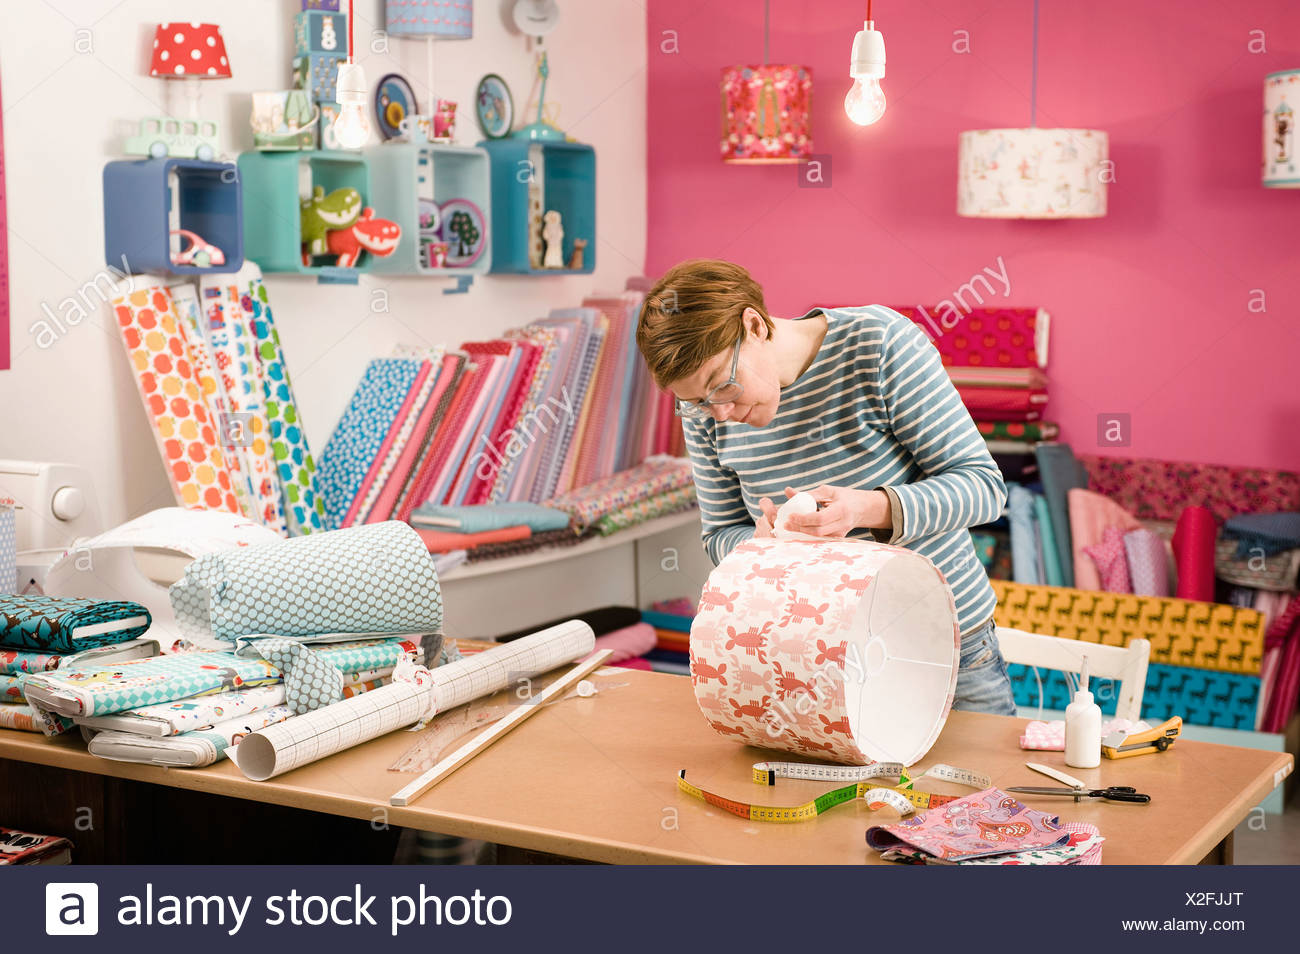 Making A Custom Lampshade, Munich, Bavaria, Germany, Europe - Stock Image